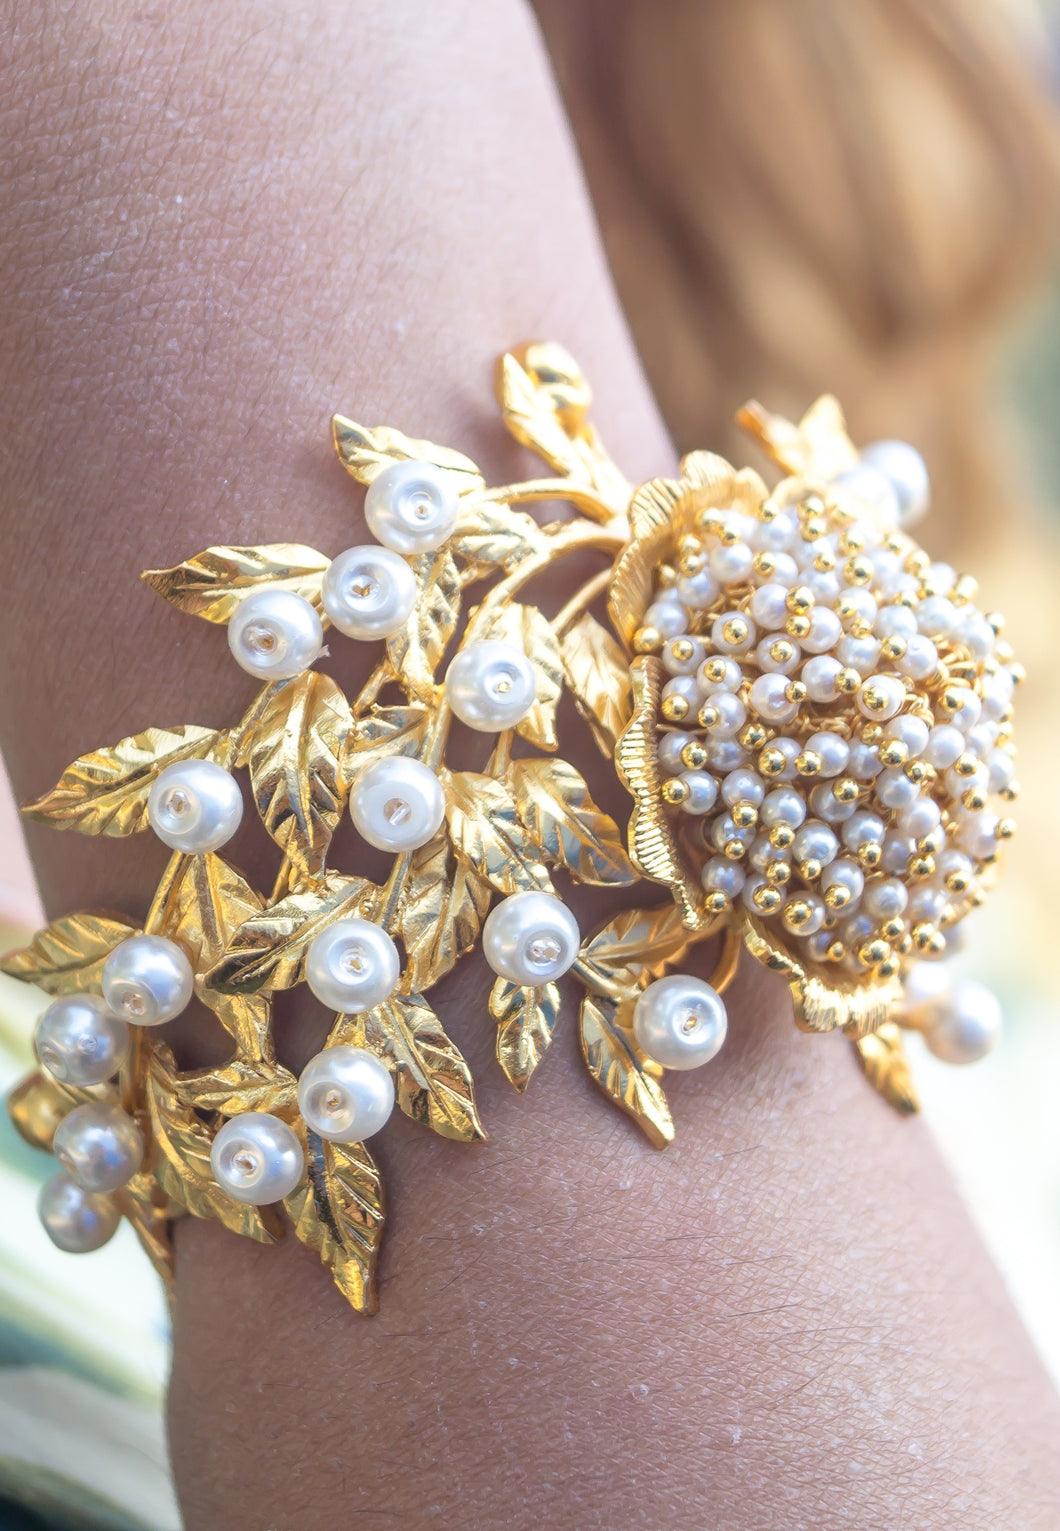 Fantasia Bracelet for Brides 2021